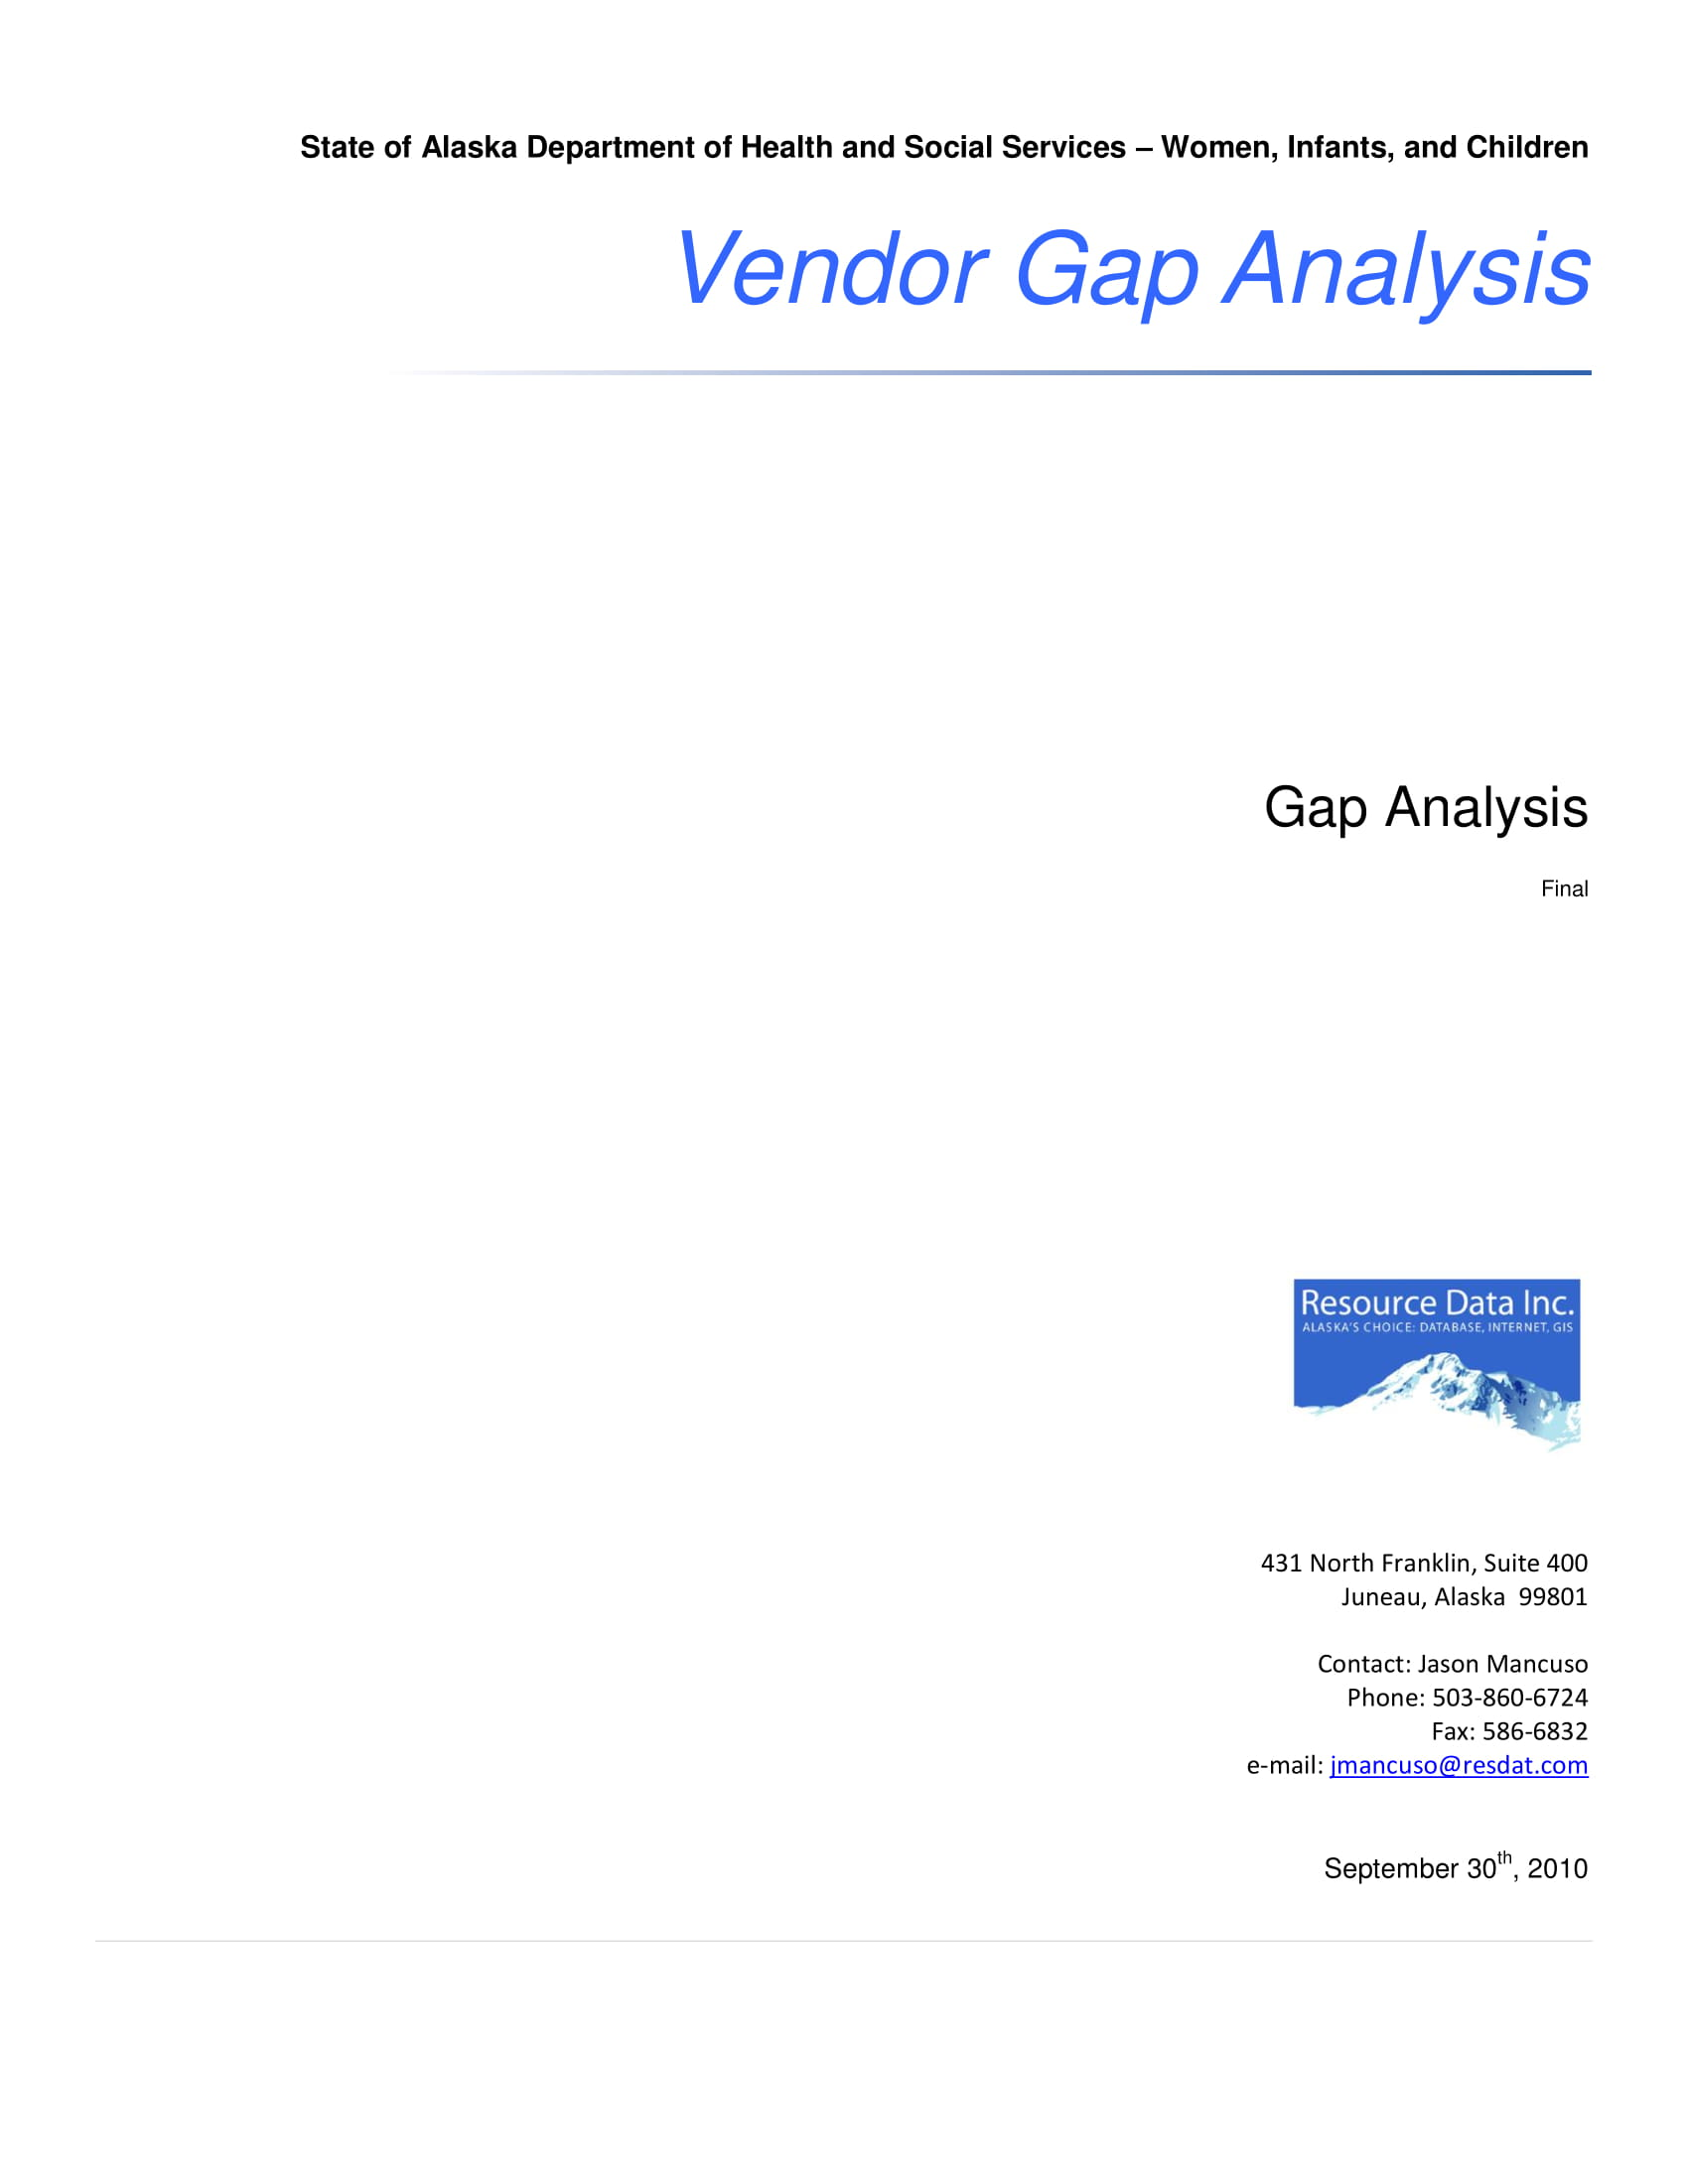 vendor gap analysis example 01